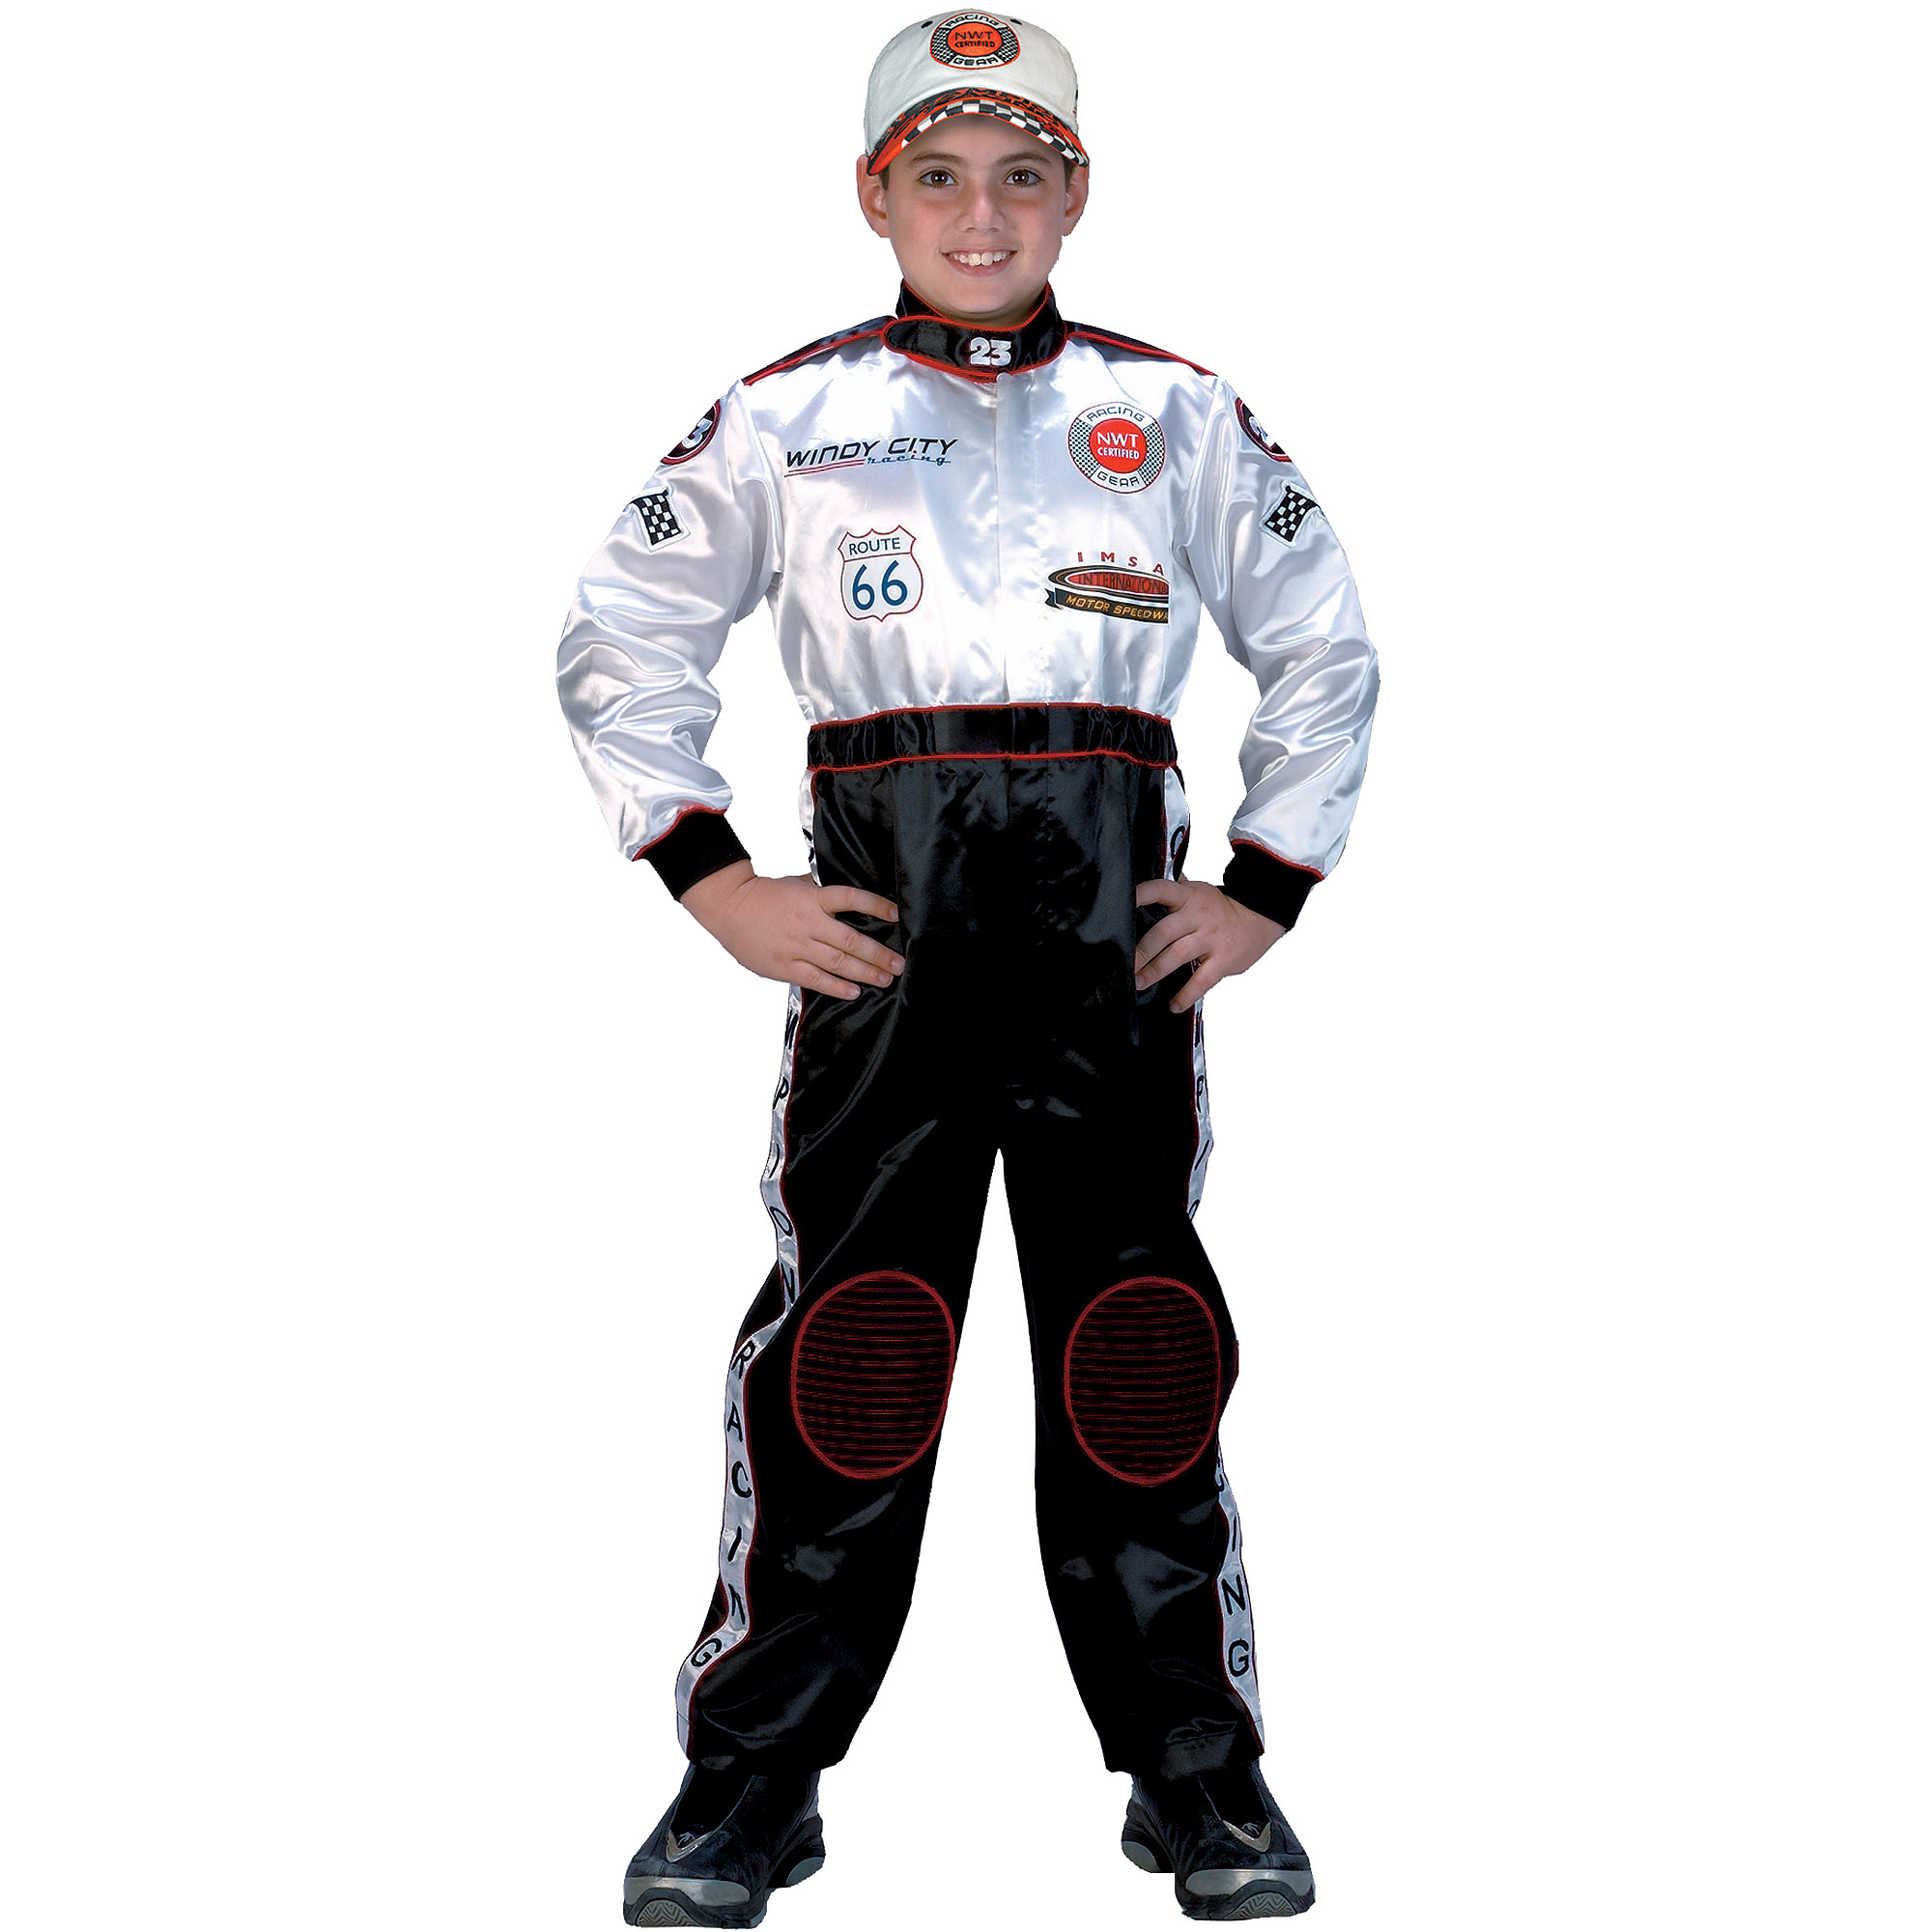 Black/White Racing Suit Child Halloween Costume